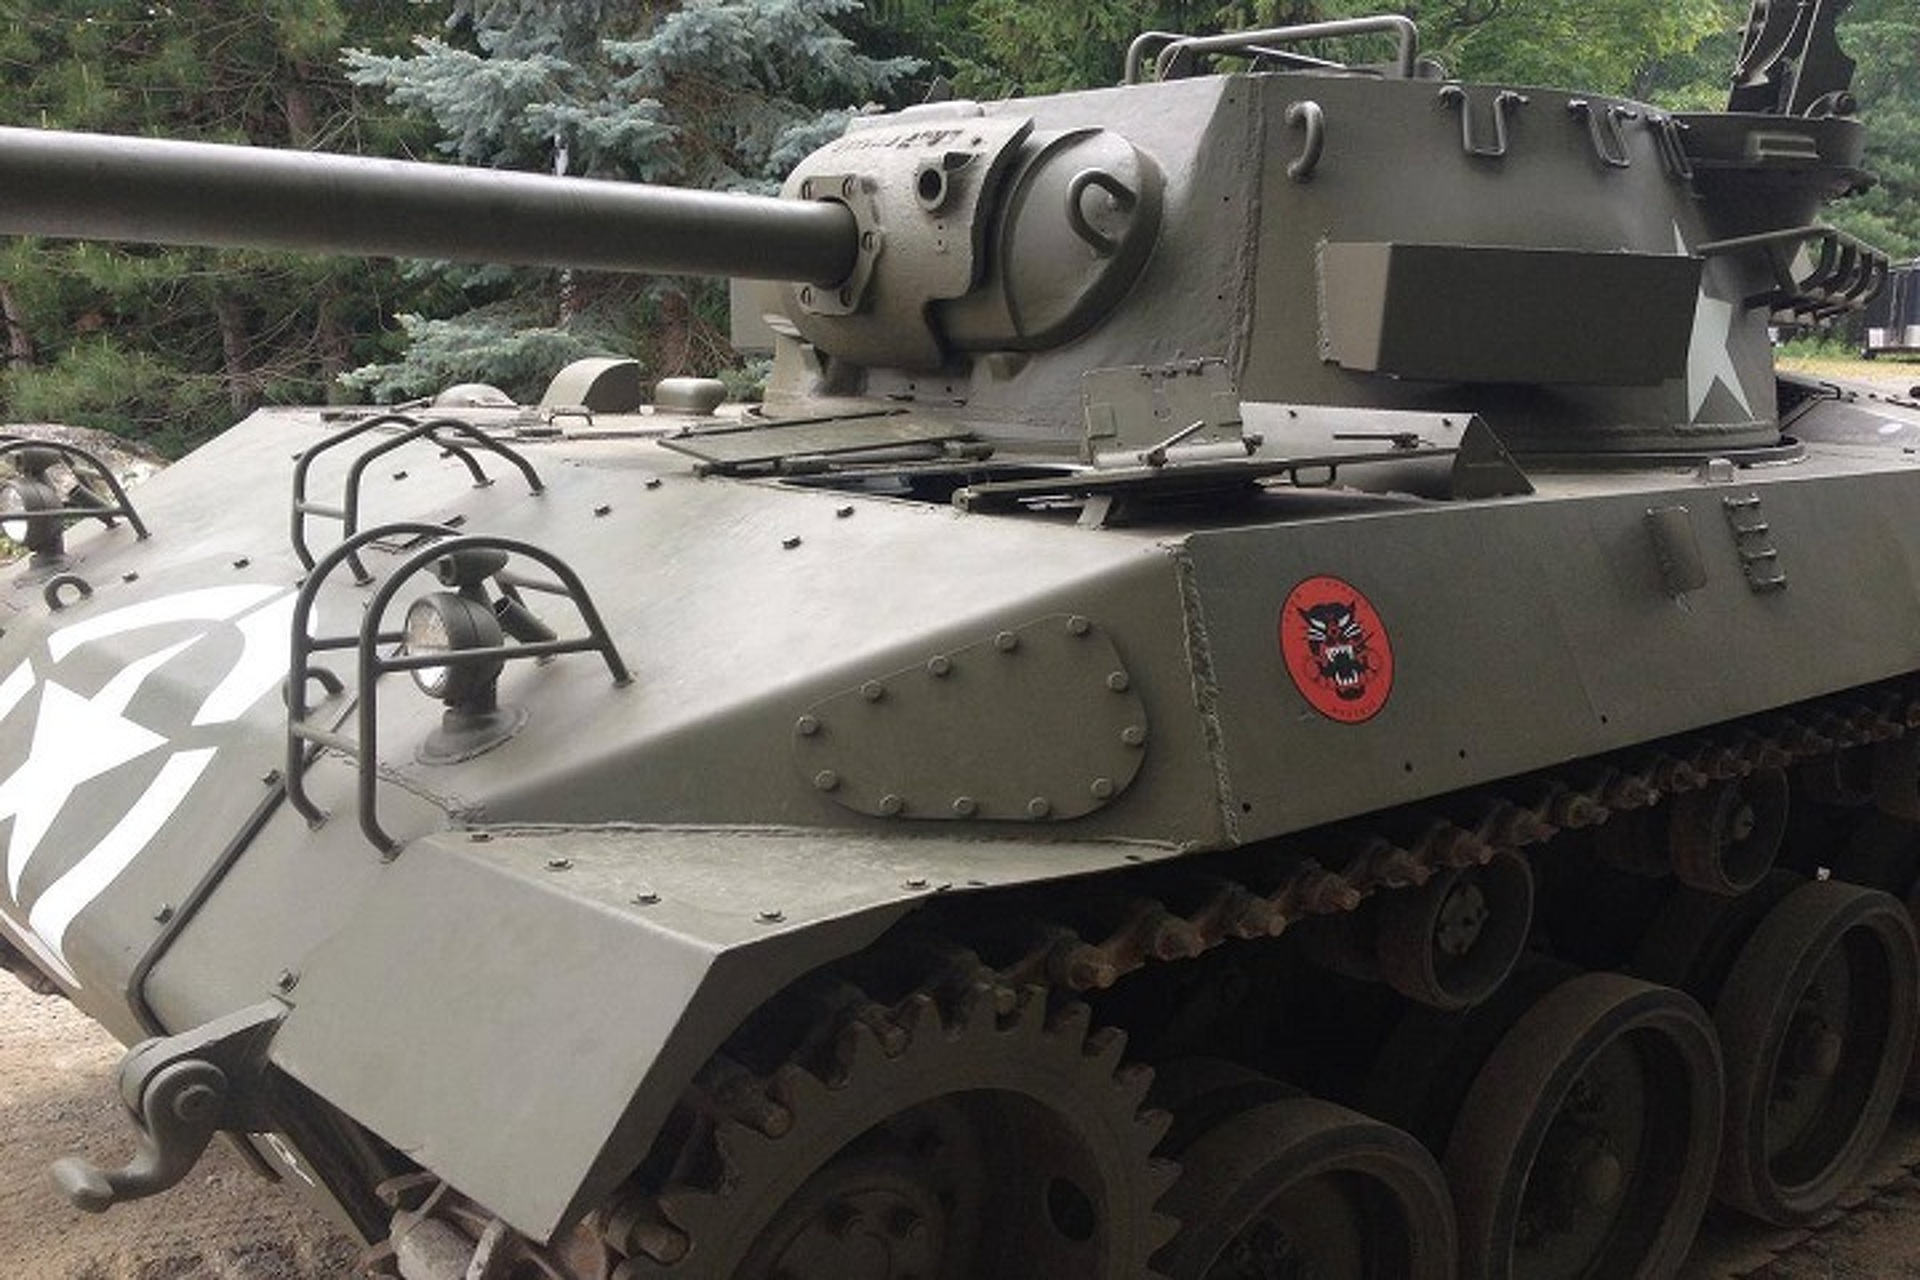 Forget Dodge Hellcats, How About a Buick Hellcat Tank?